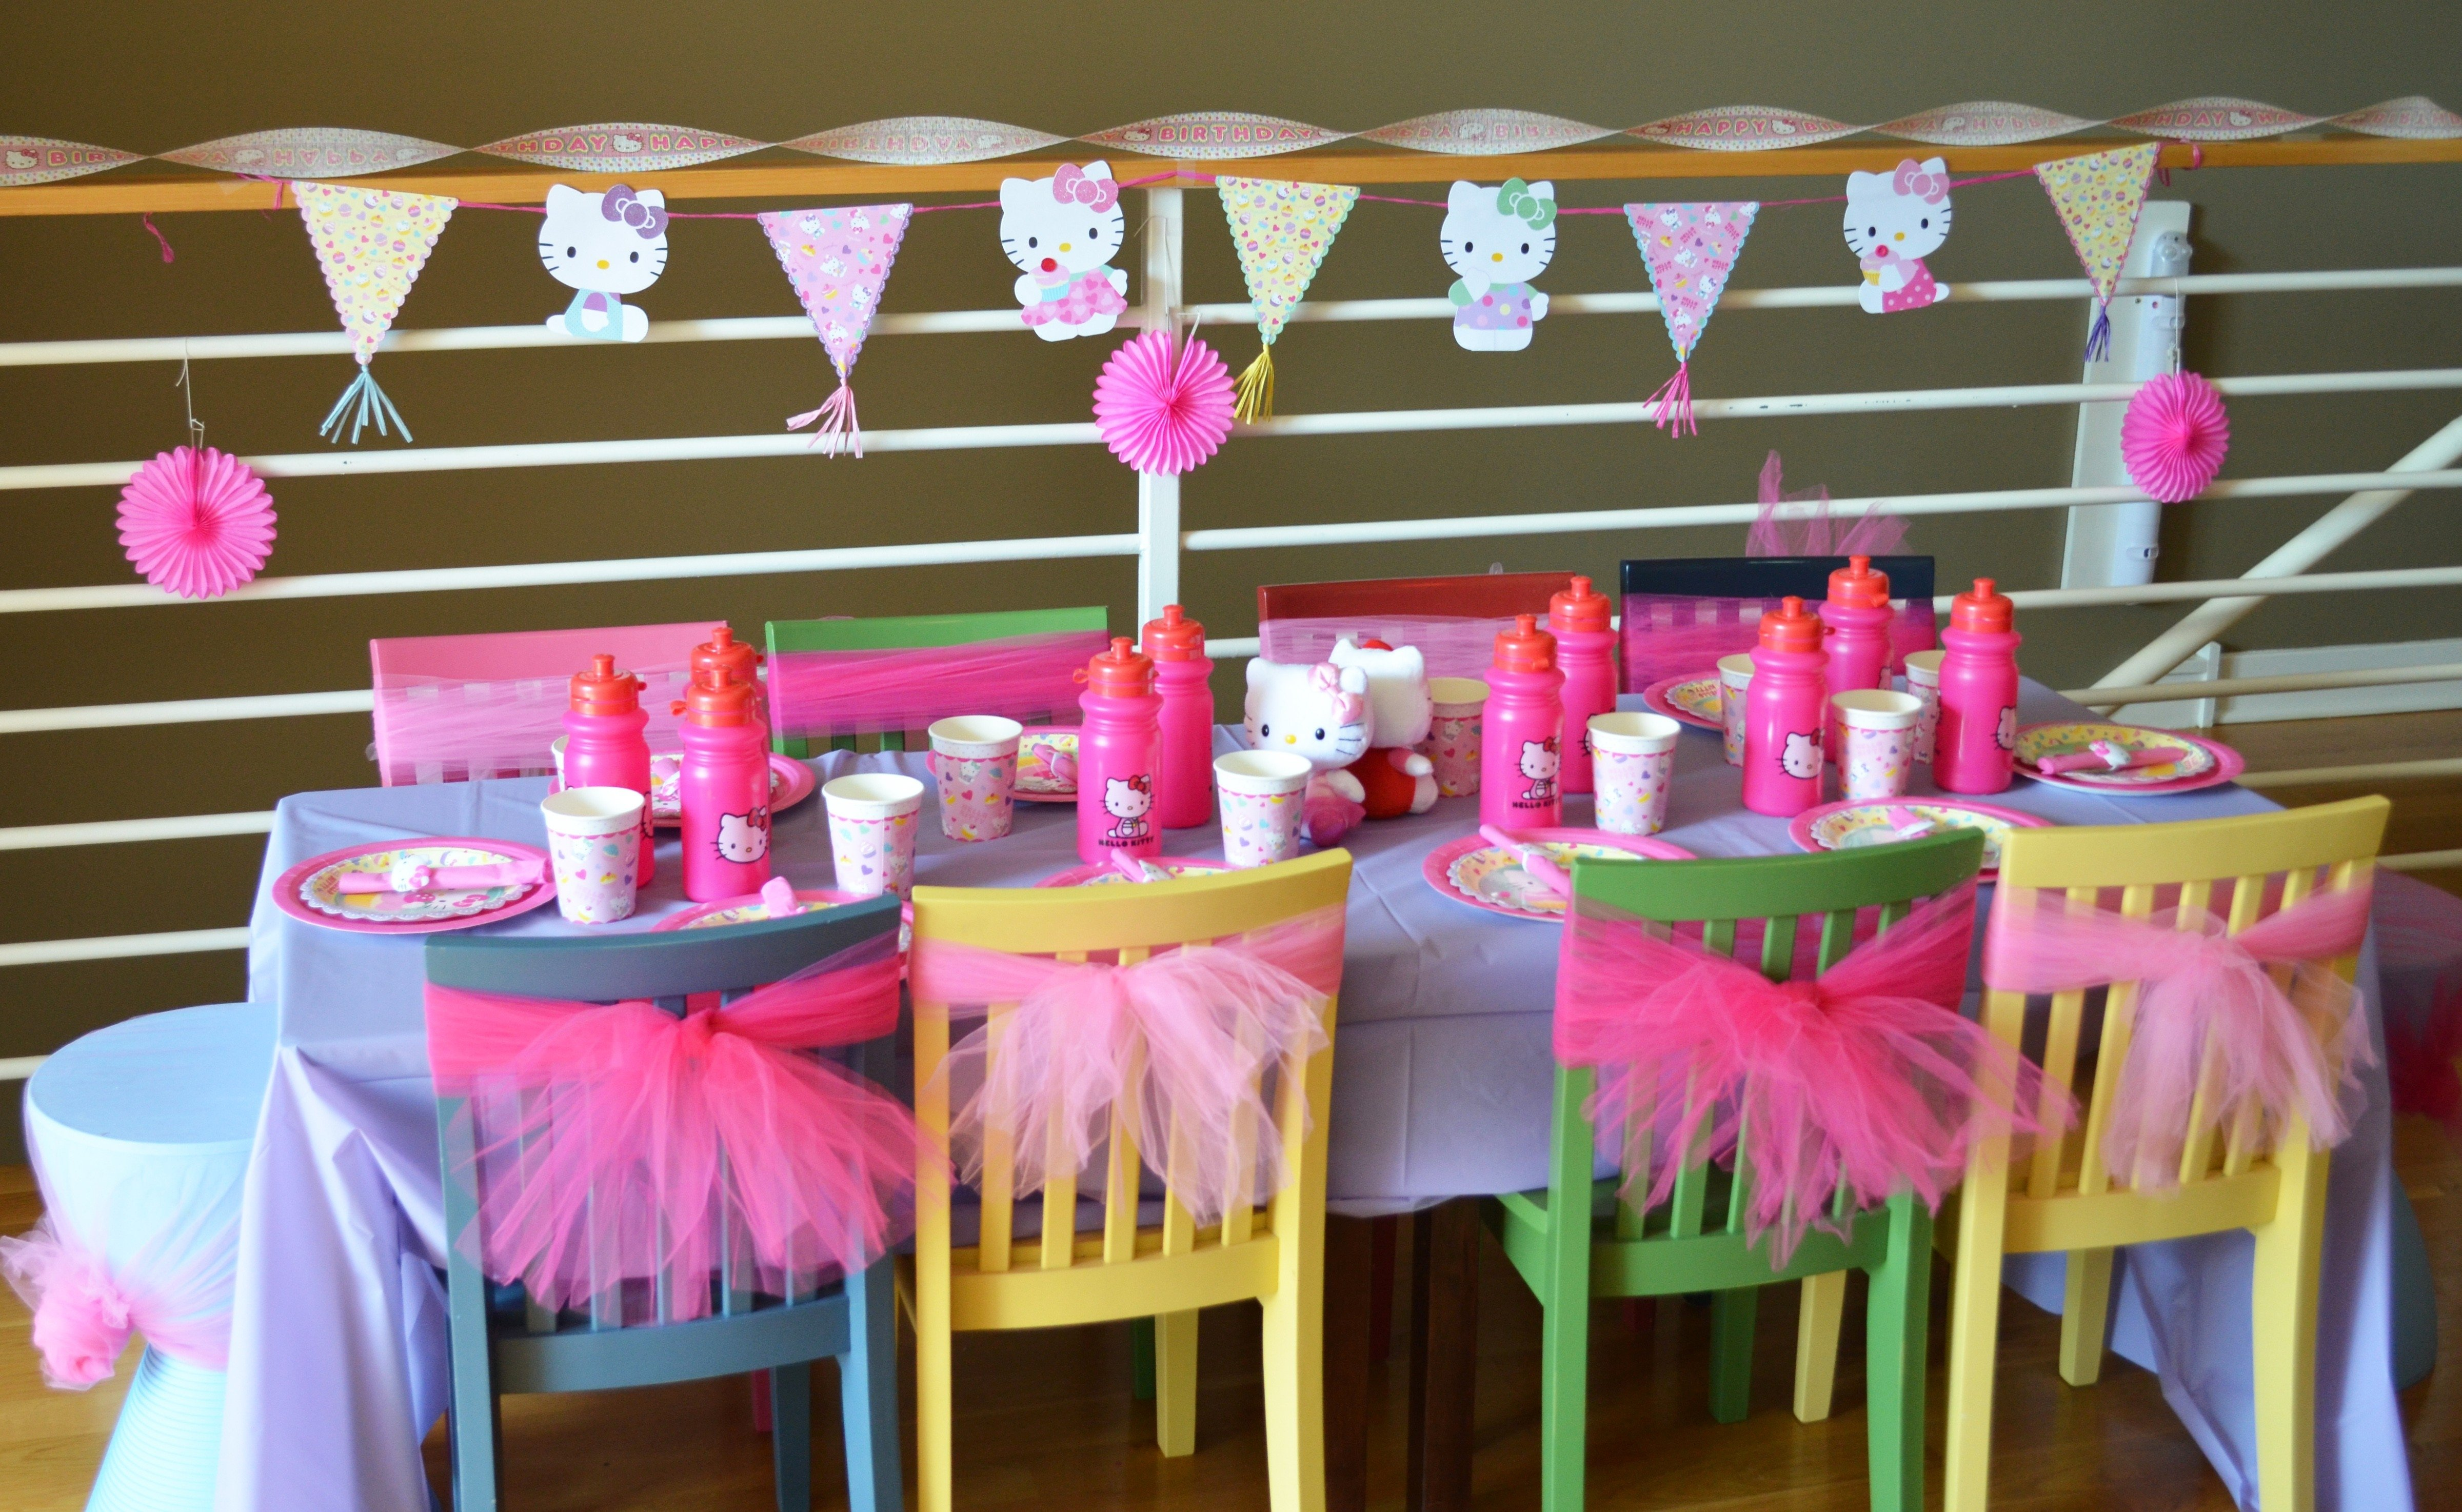 10 Awesome Three Year Old Birthday Party Ideas 27 cute models regarding 3 year old birthday party that you shouldn 4 2021